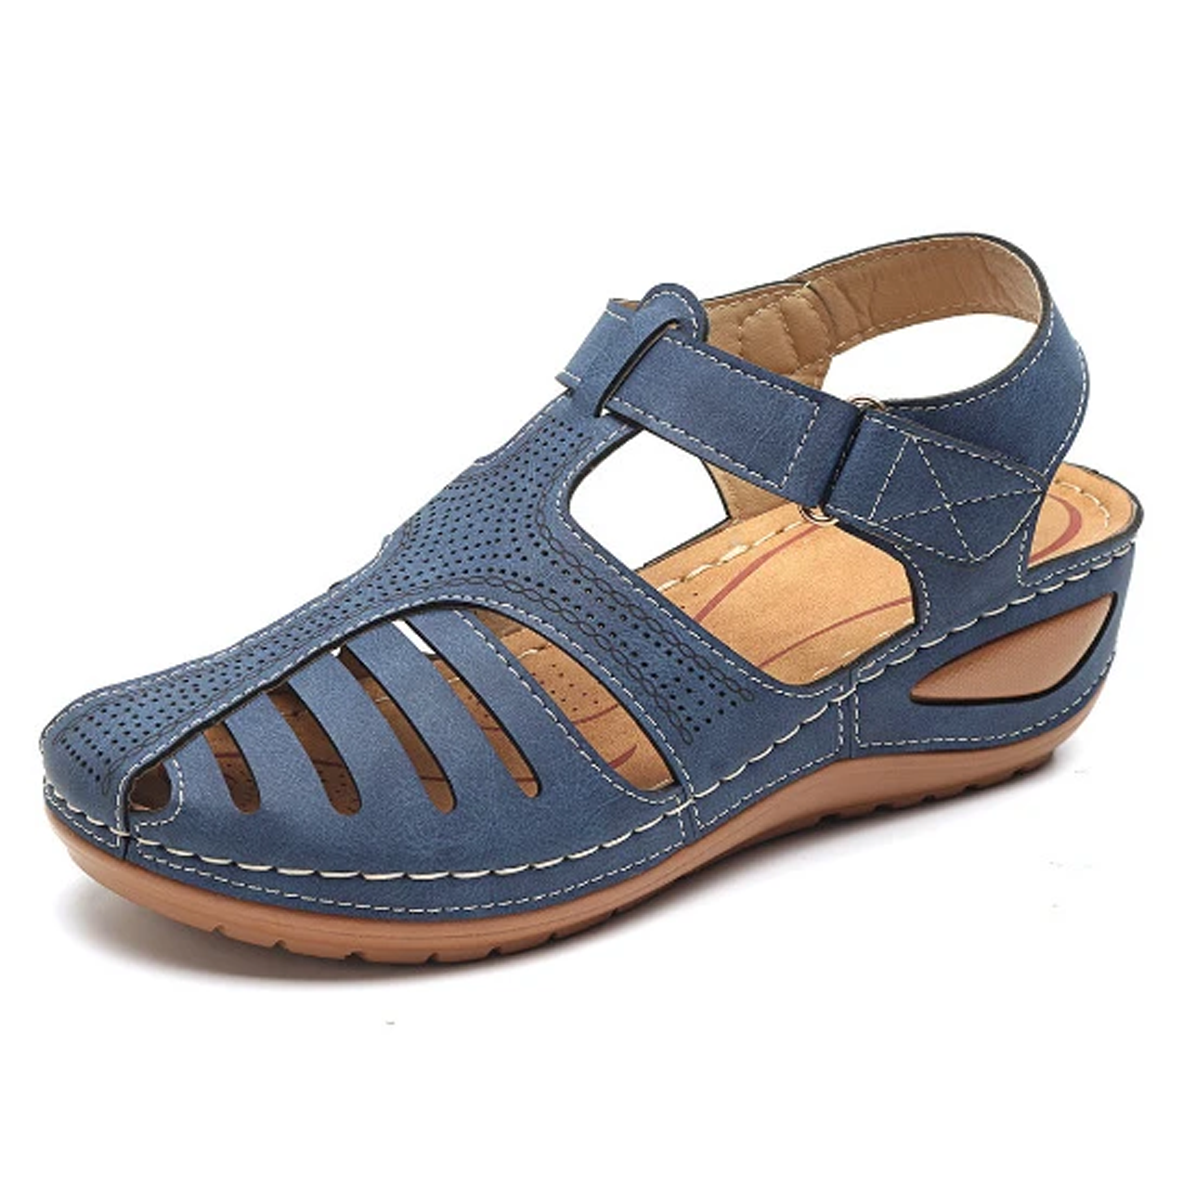 FLASH DEALS - RETRO NON-SLIP ROUND TOE WEDGE SANDALS